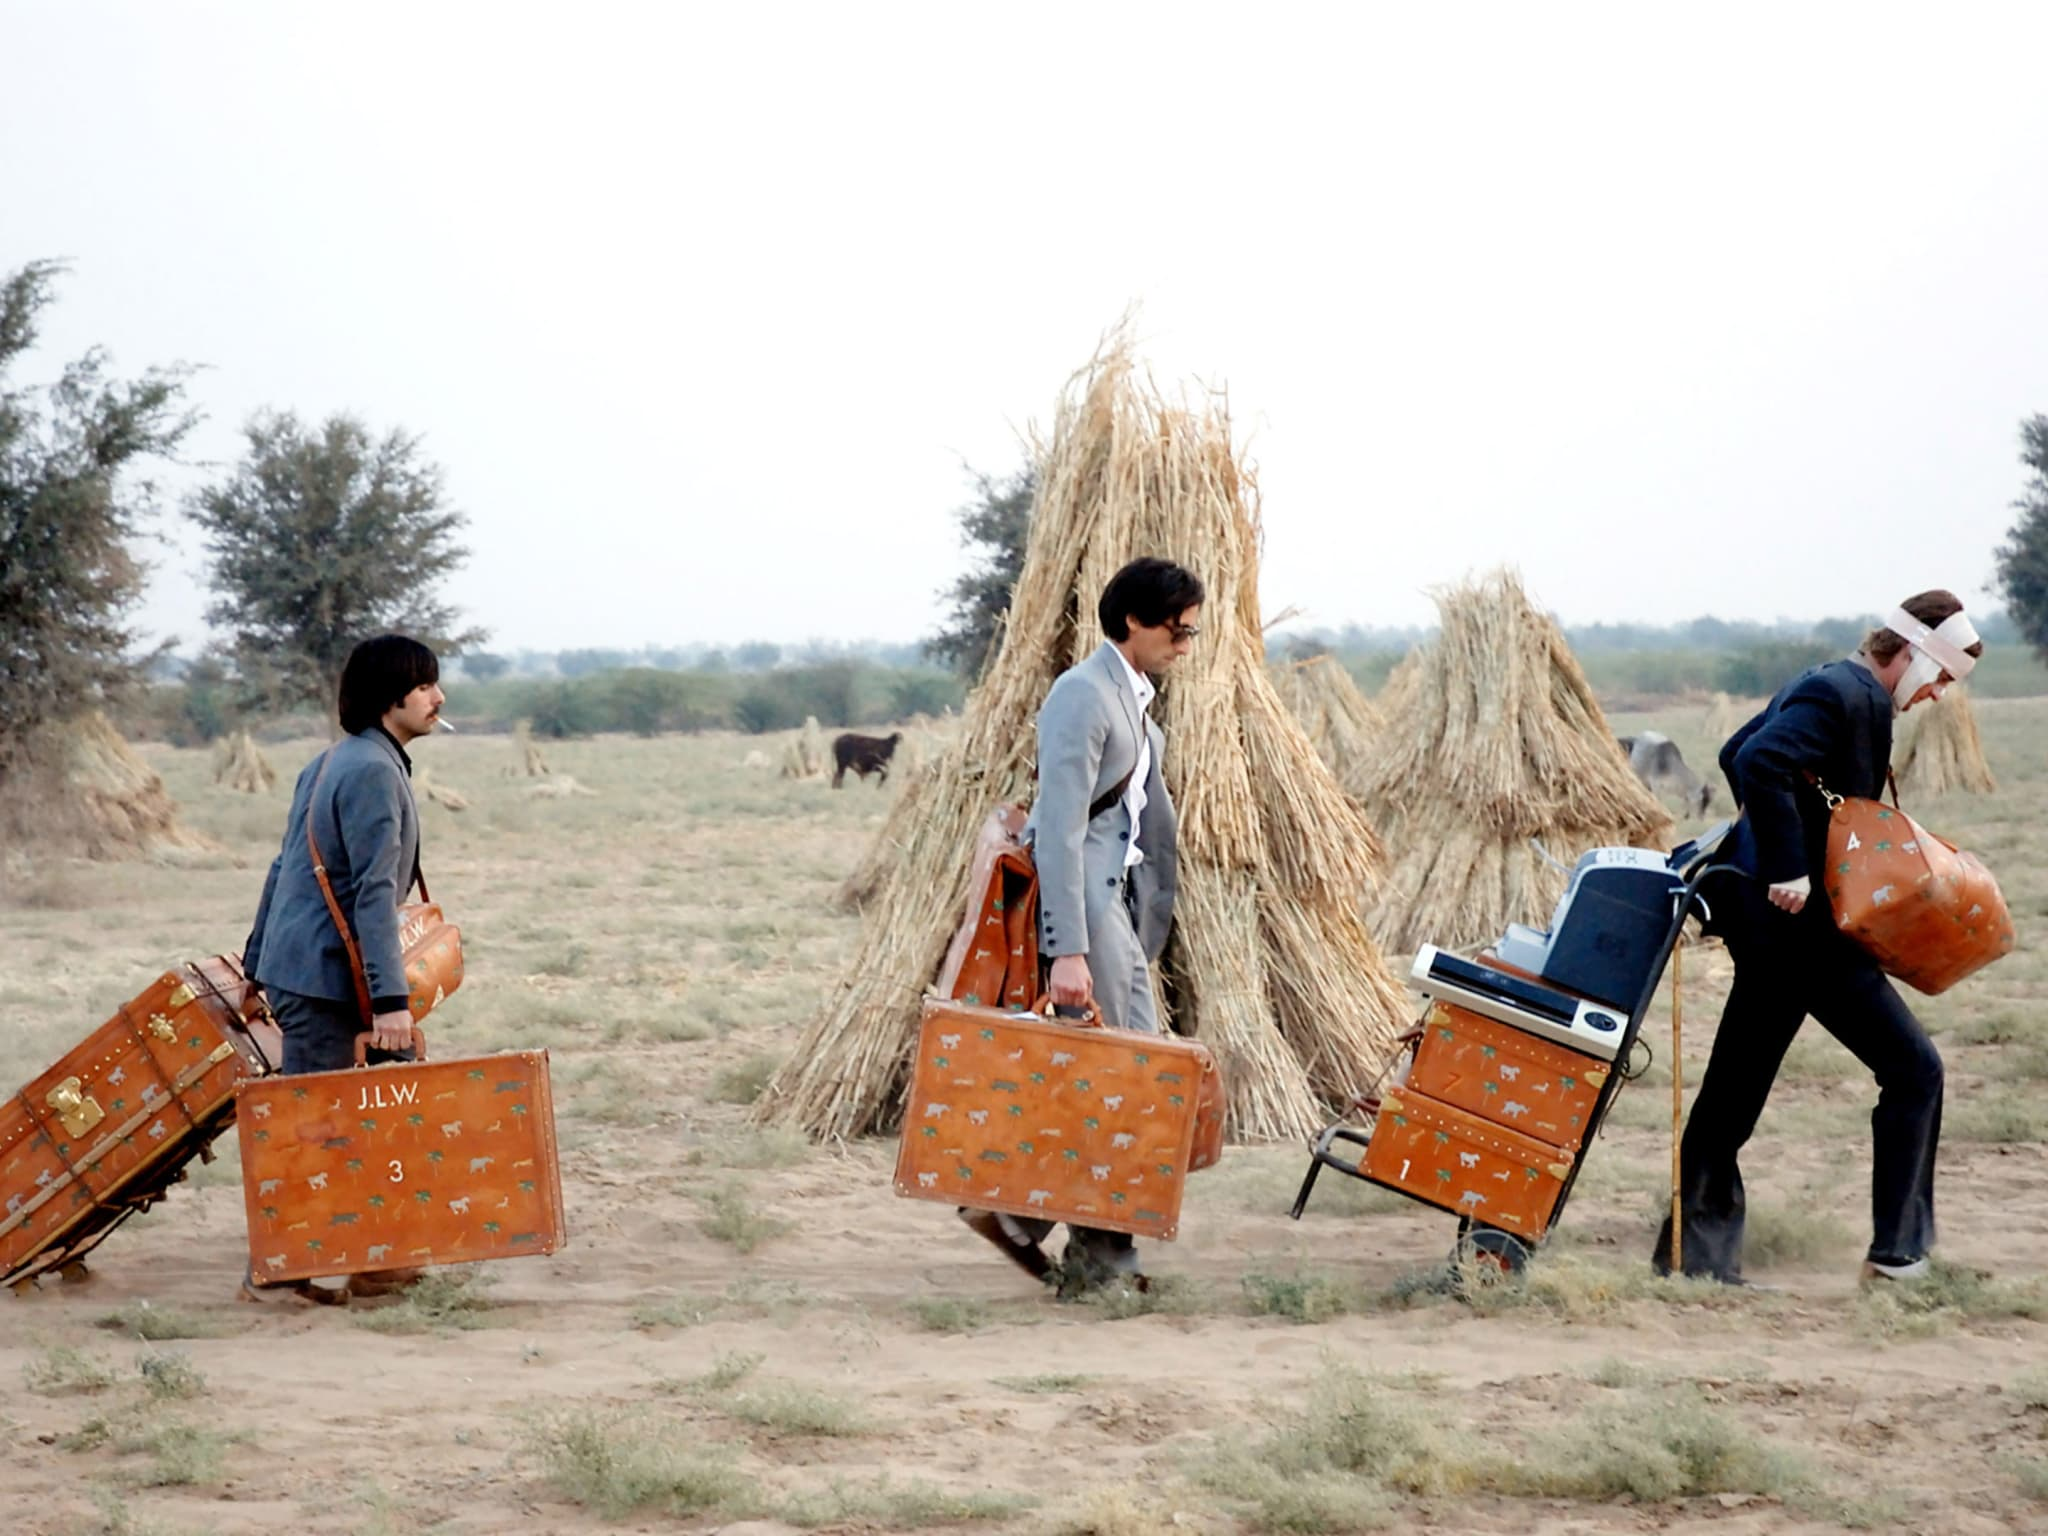 Three men pulling their suitcases through a field.